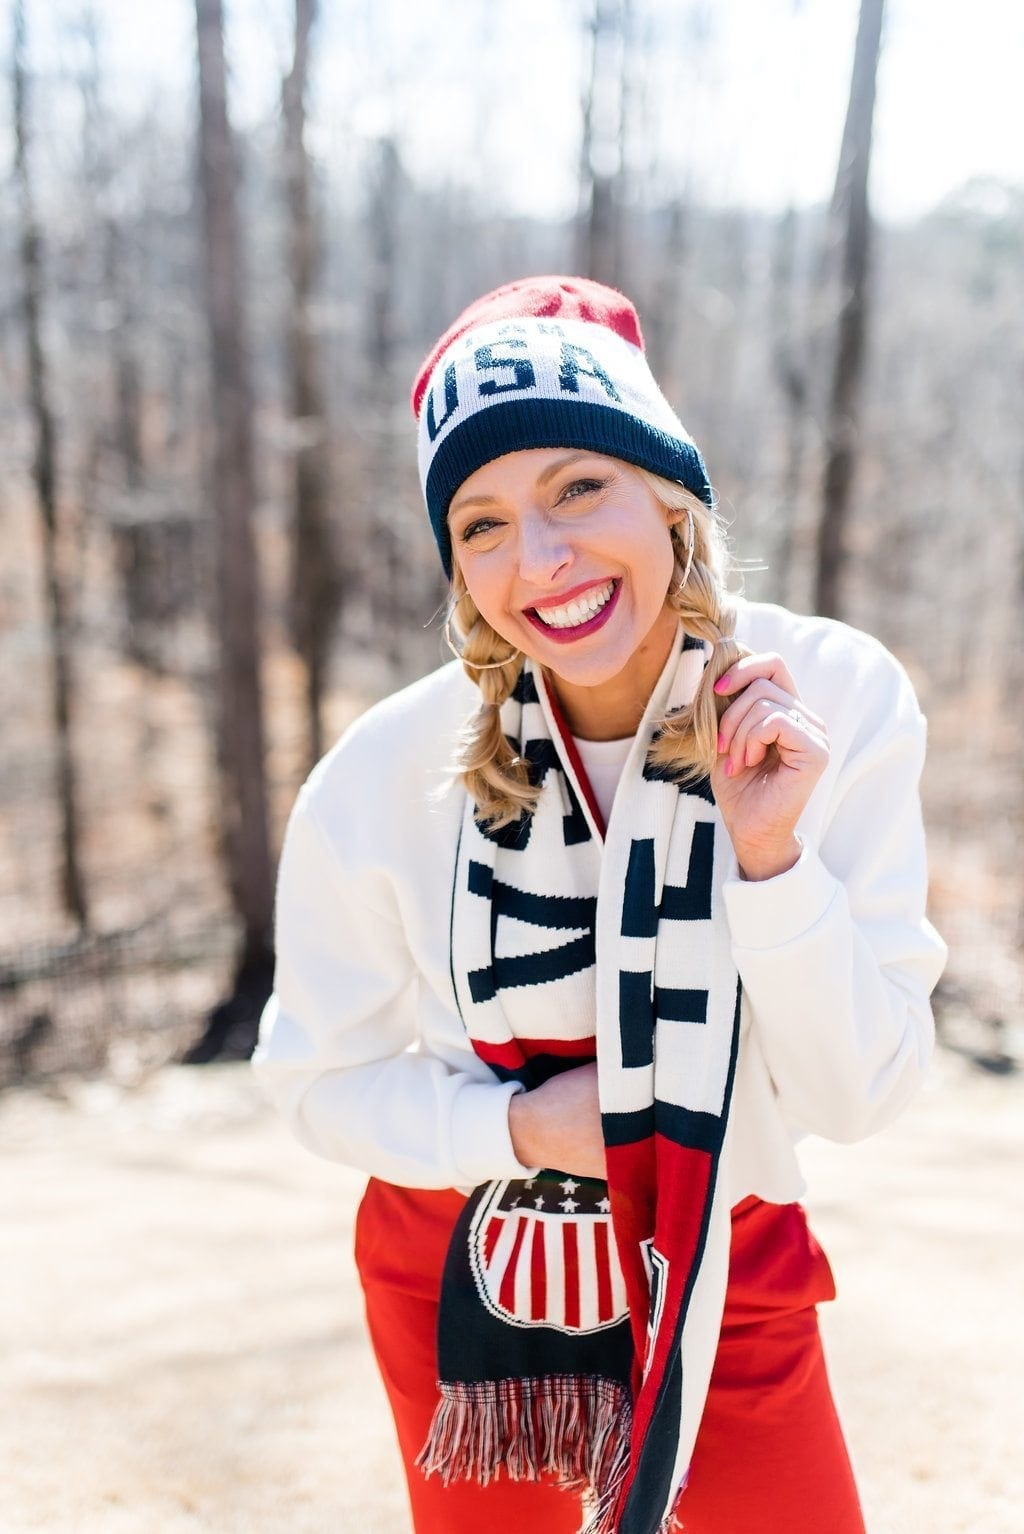 Team USA hat and scarf.